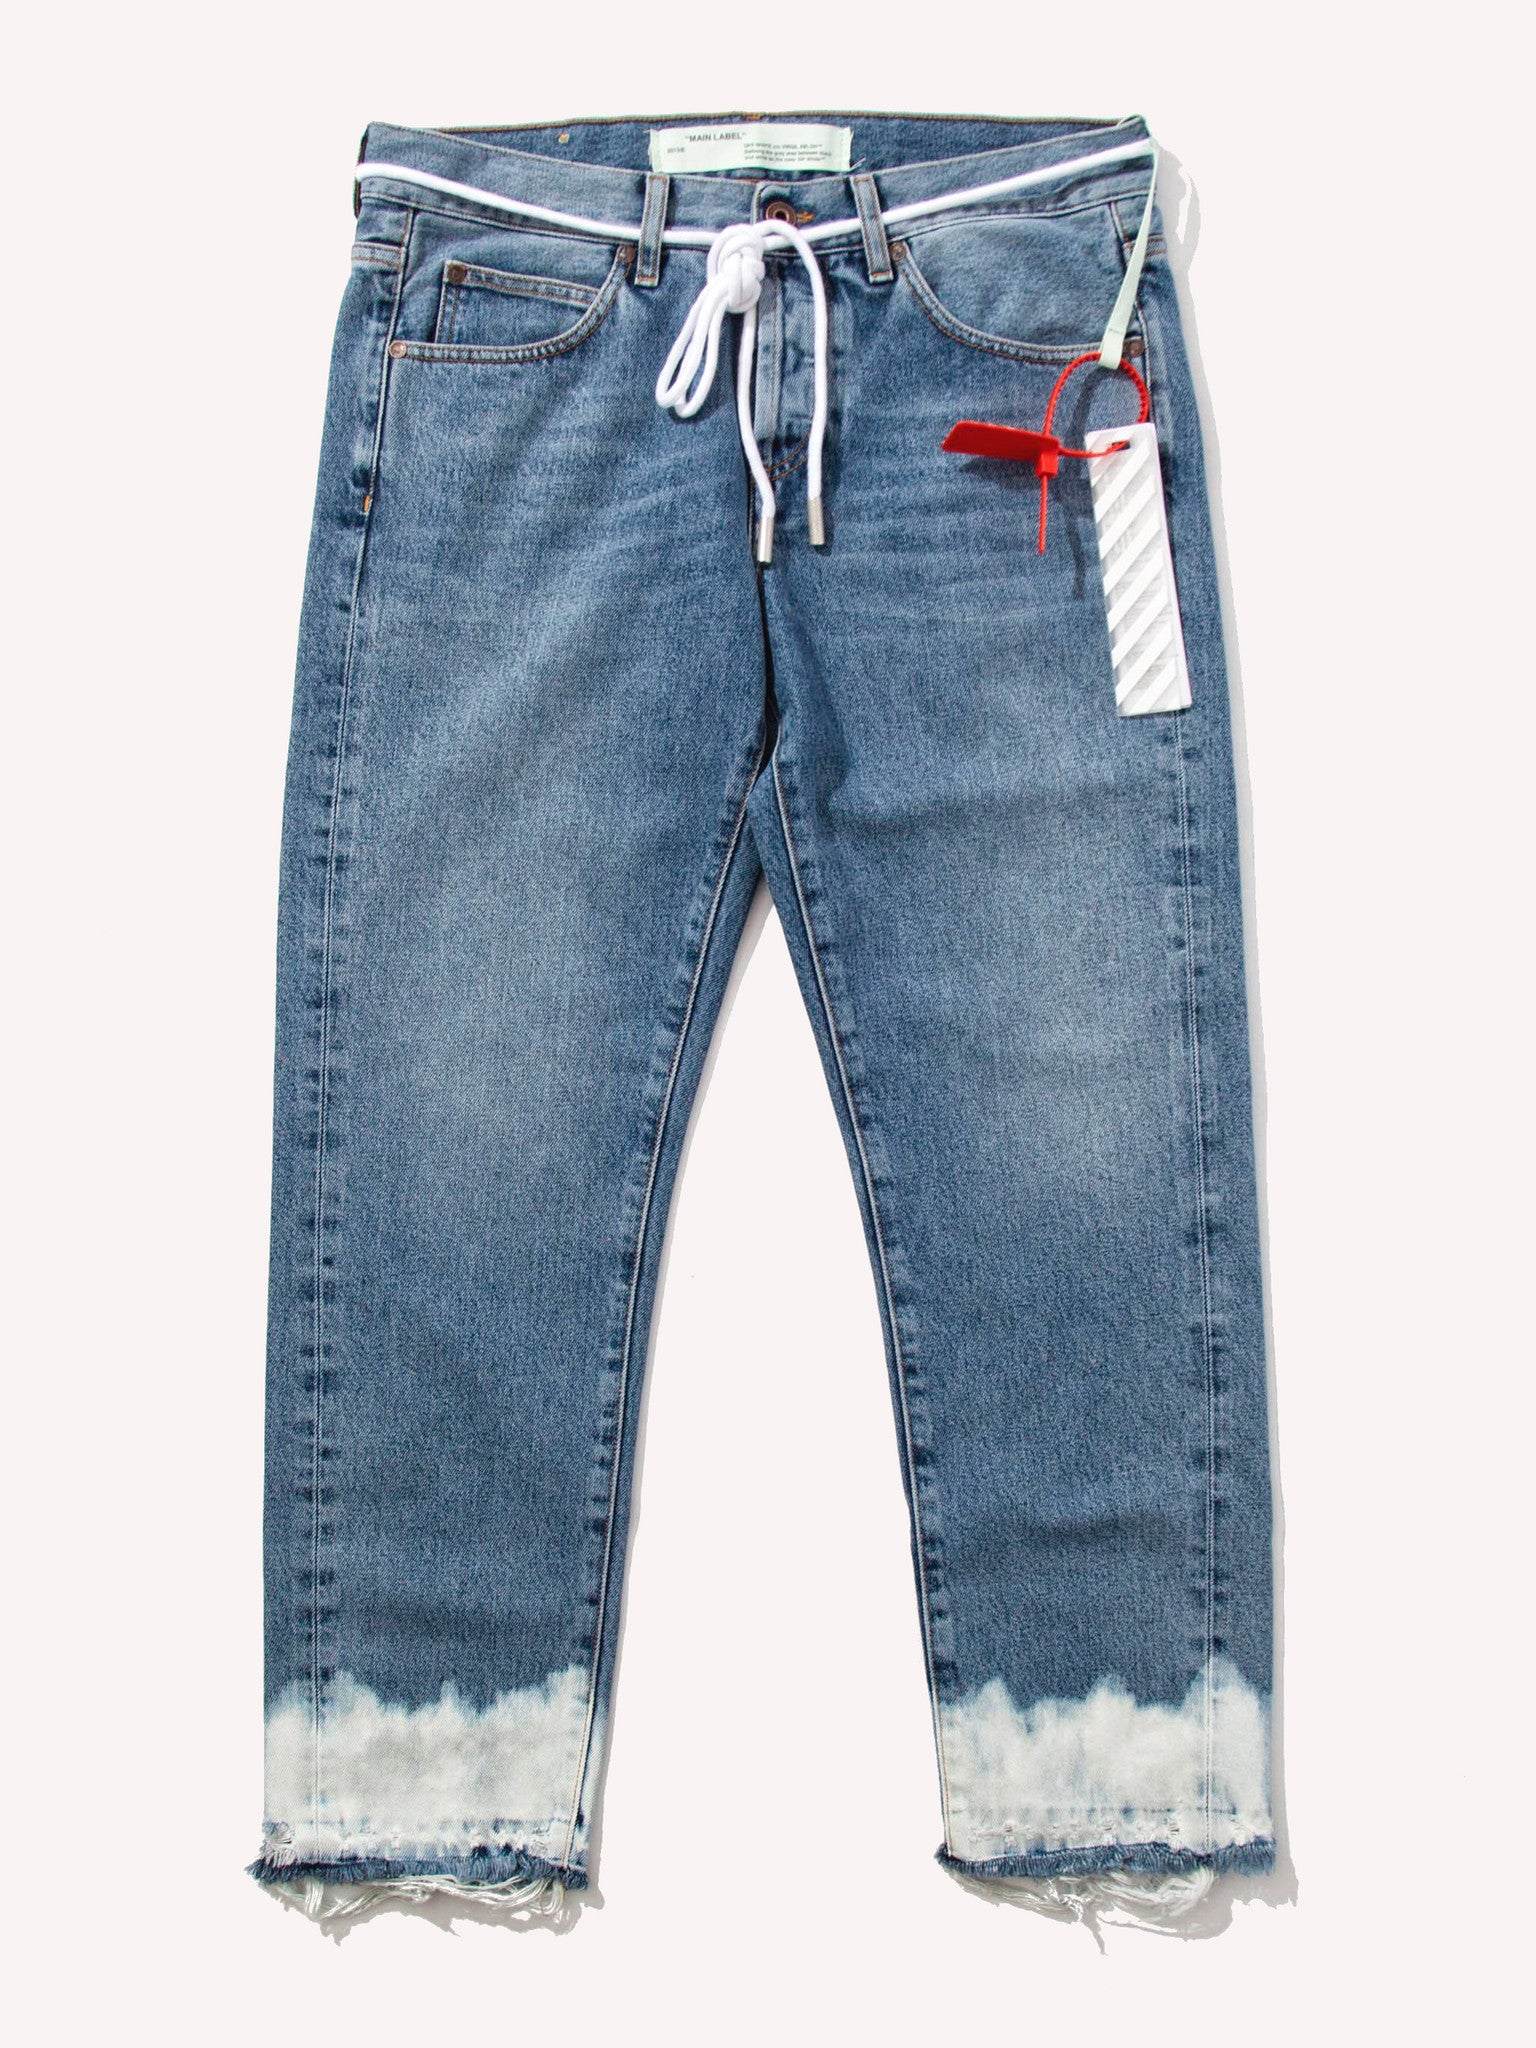 Crop 5 Pockets Bottom Bleach VTG Denim